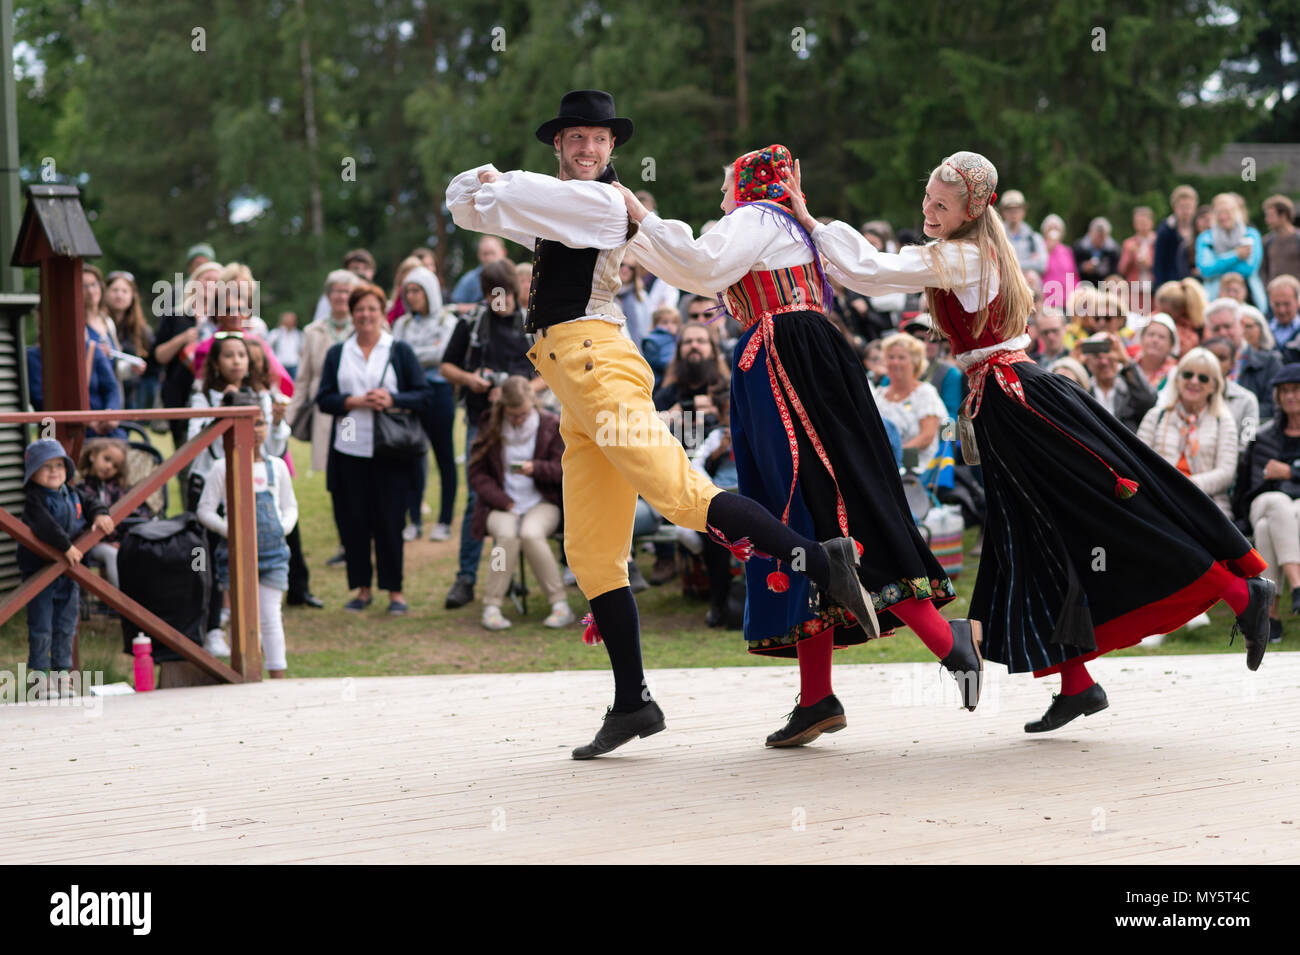 Stockholm, Sweden, June 6, 2018. Sweden's National Day celebration at Skansen, Stockholm. Public holiday in Sweden and traditional Swedish National Day June 6 celebration at the world´s oldest  open-air museum - Skansen. Credit: Barbro Bergfeldt/Alamy Live News Stock Photo